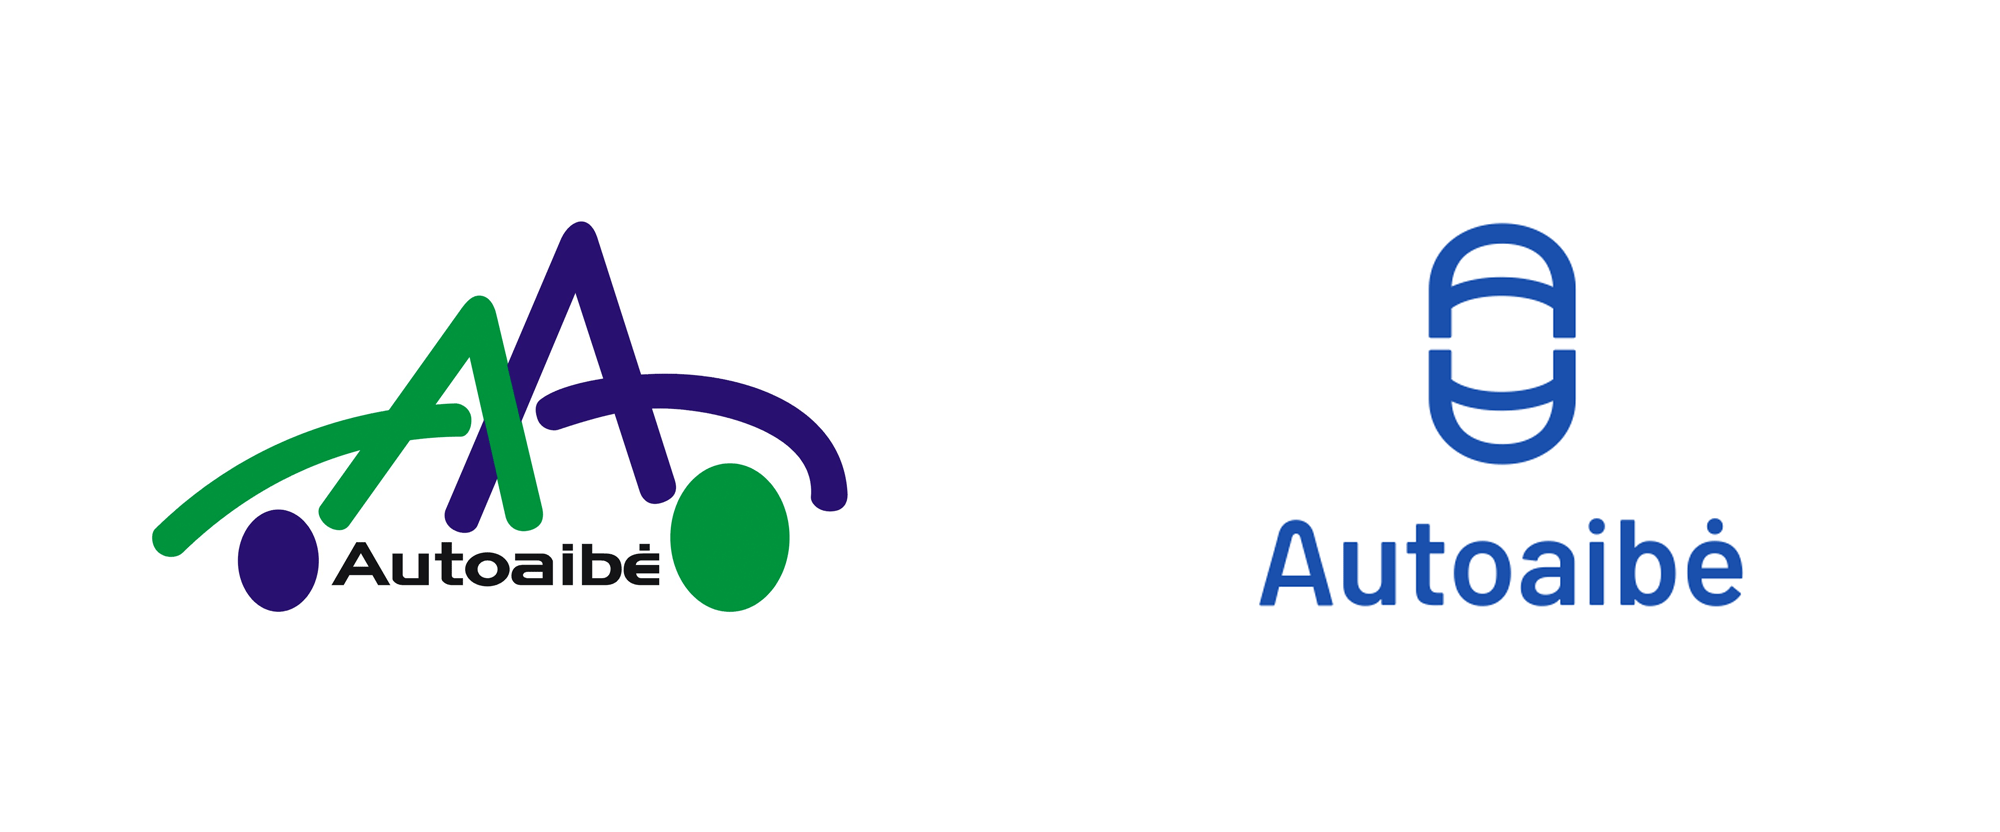 New Logo and Identity for Autoaibė by Rebrand